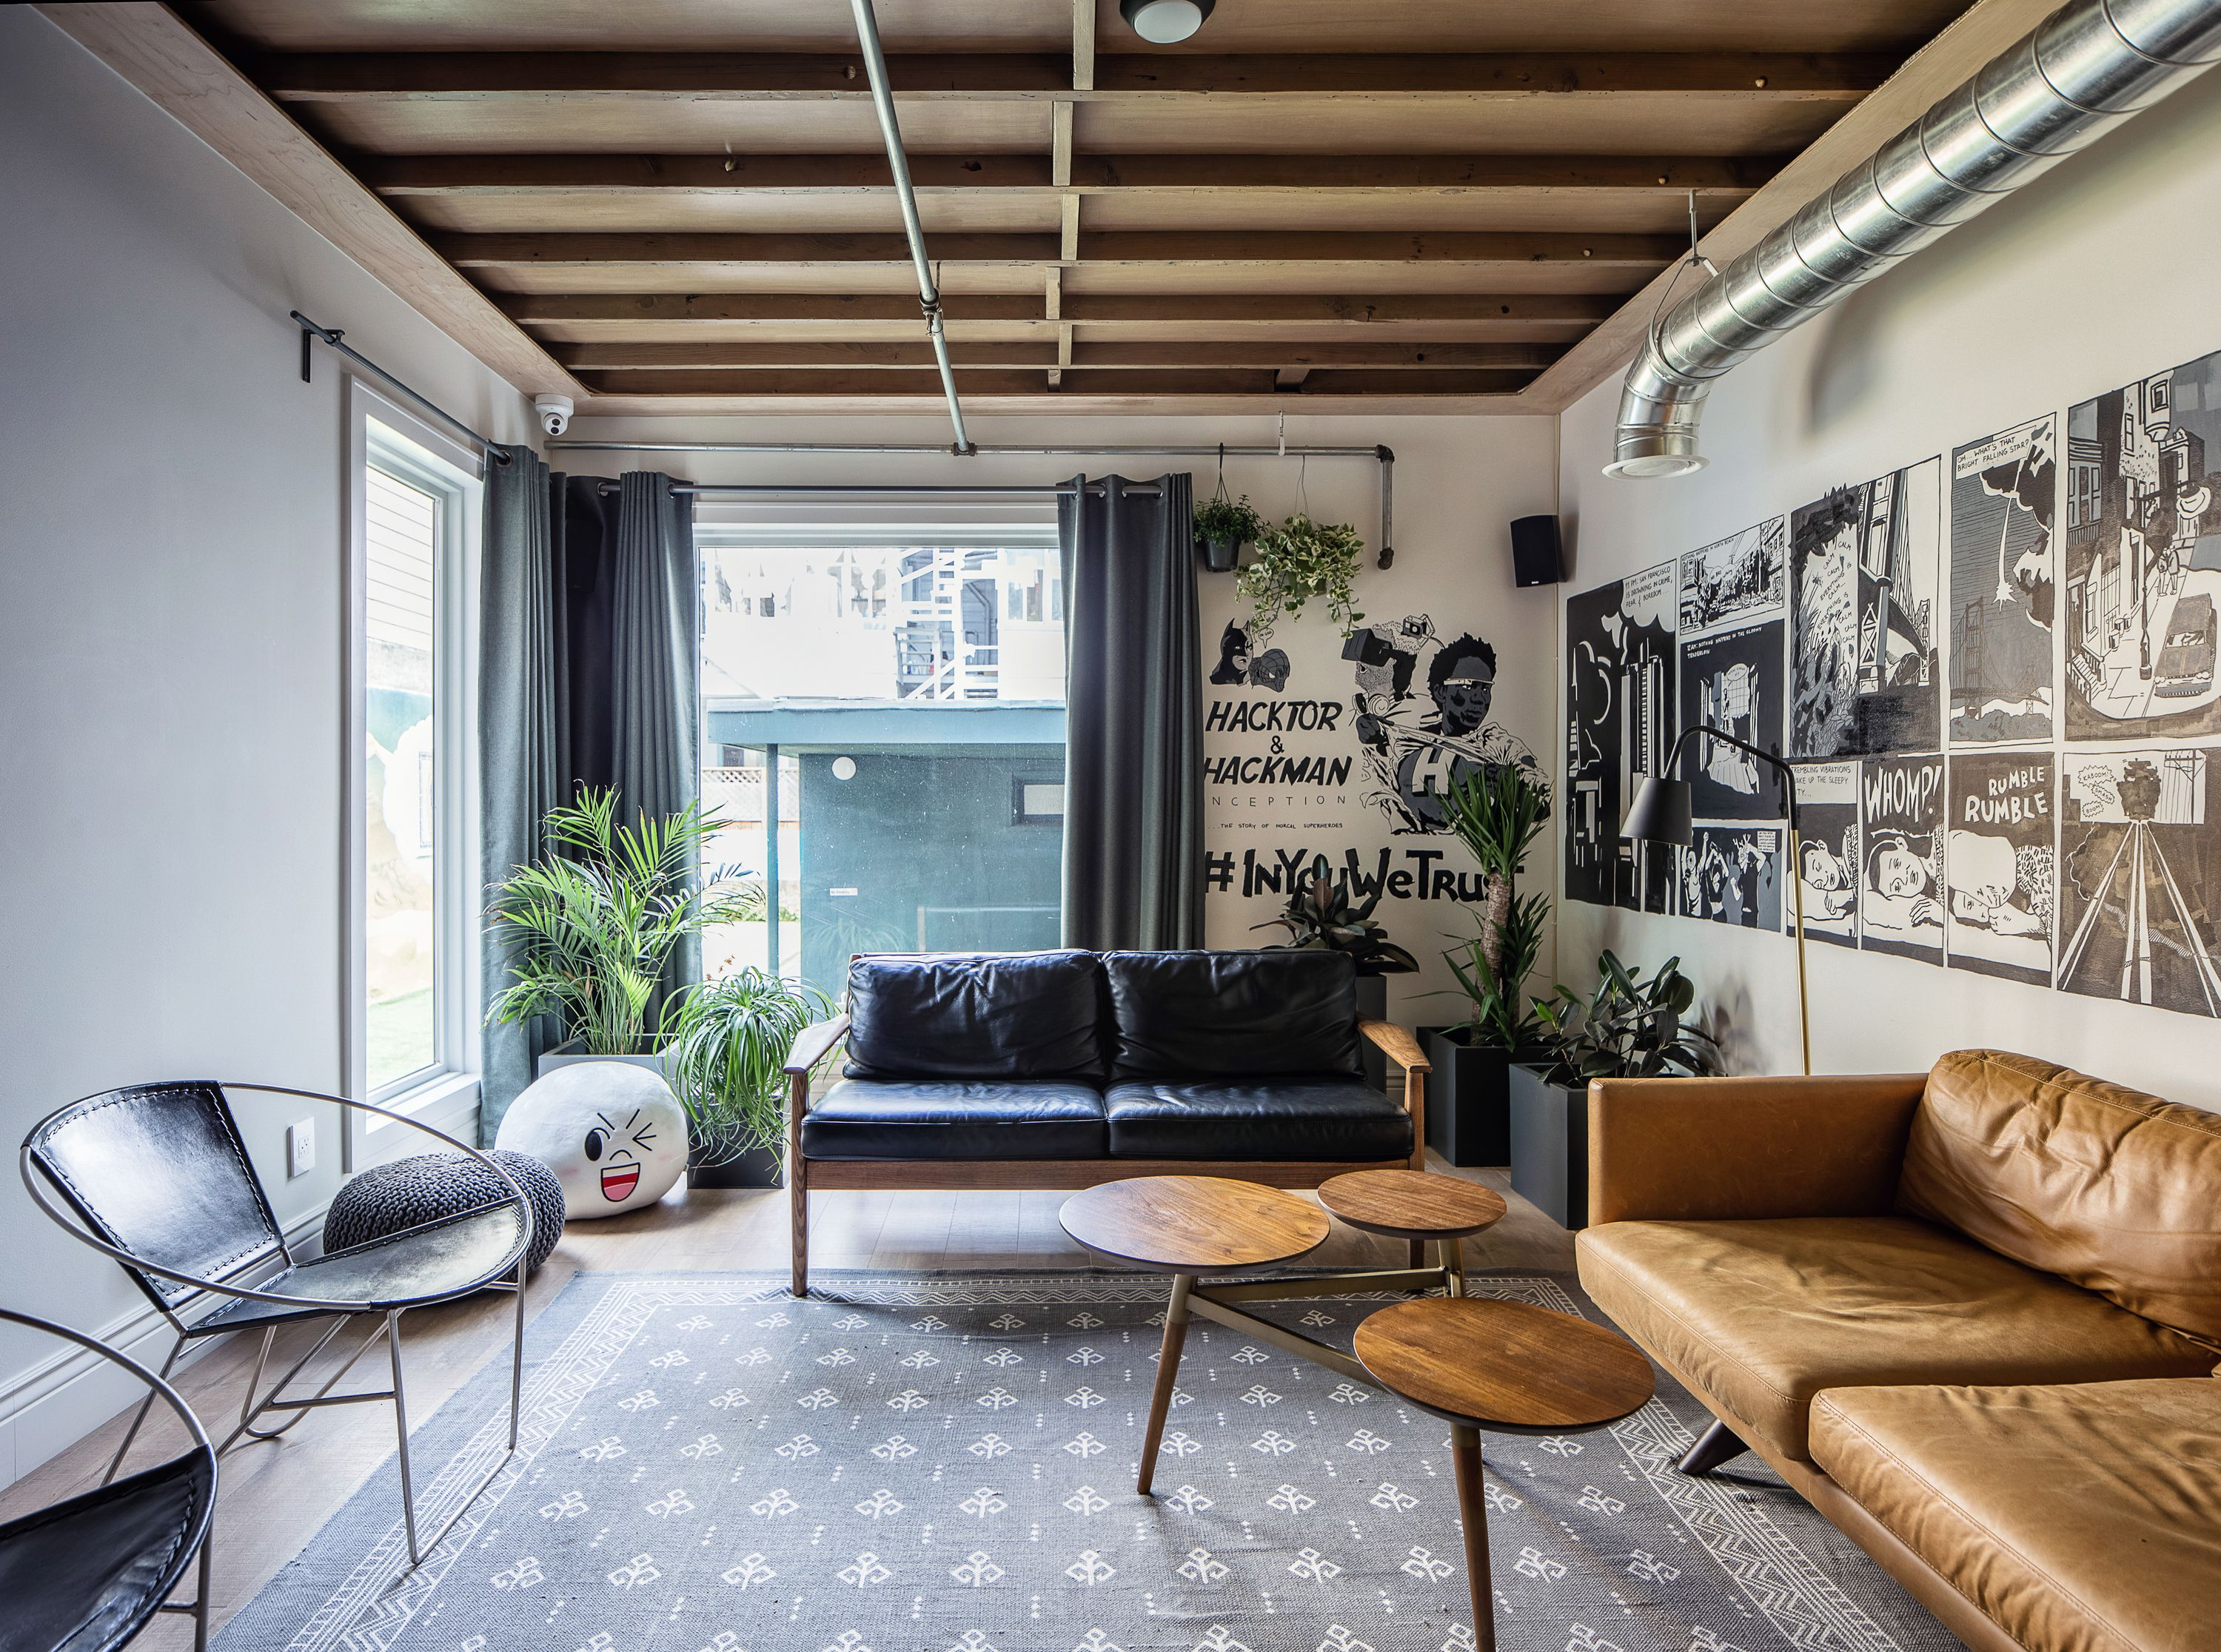 munity coliving in San Francisco on Behance fun head